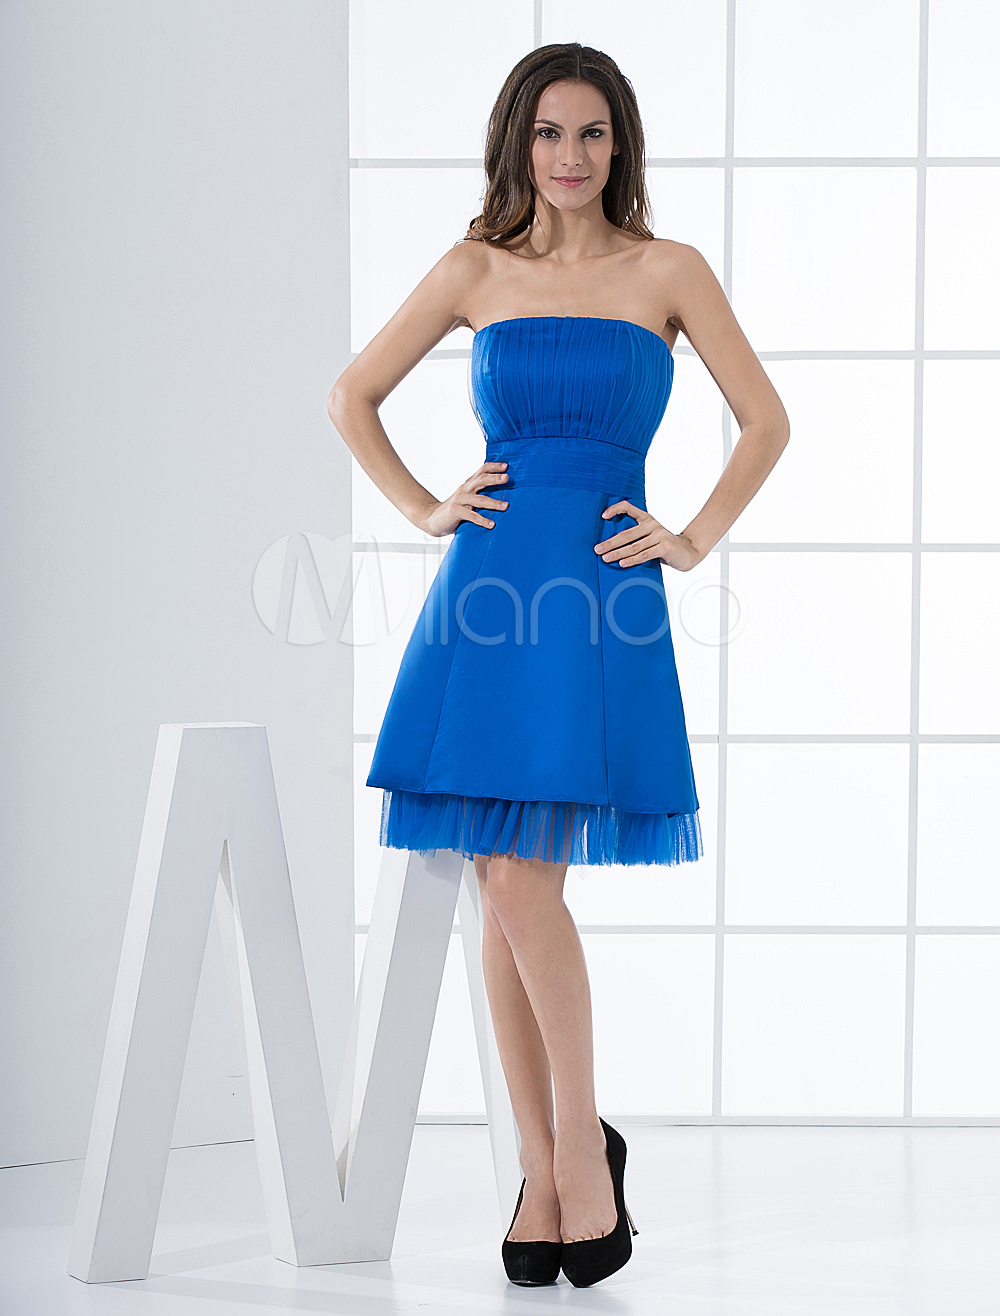 Glamour Royal Blue Short A-line Cocktail Dress with Strapless Neck (Wedding Cheap Party Dress) photo